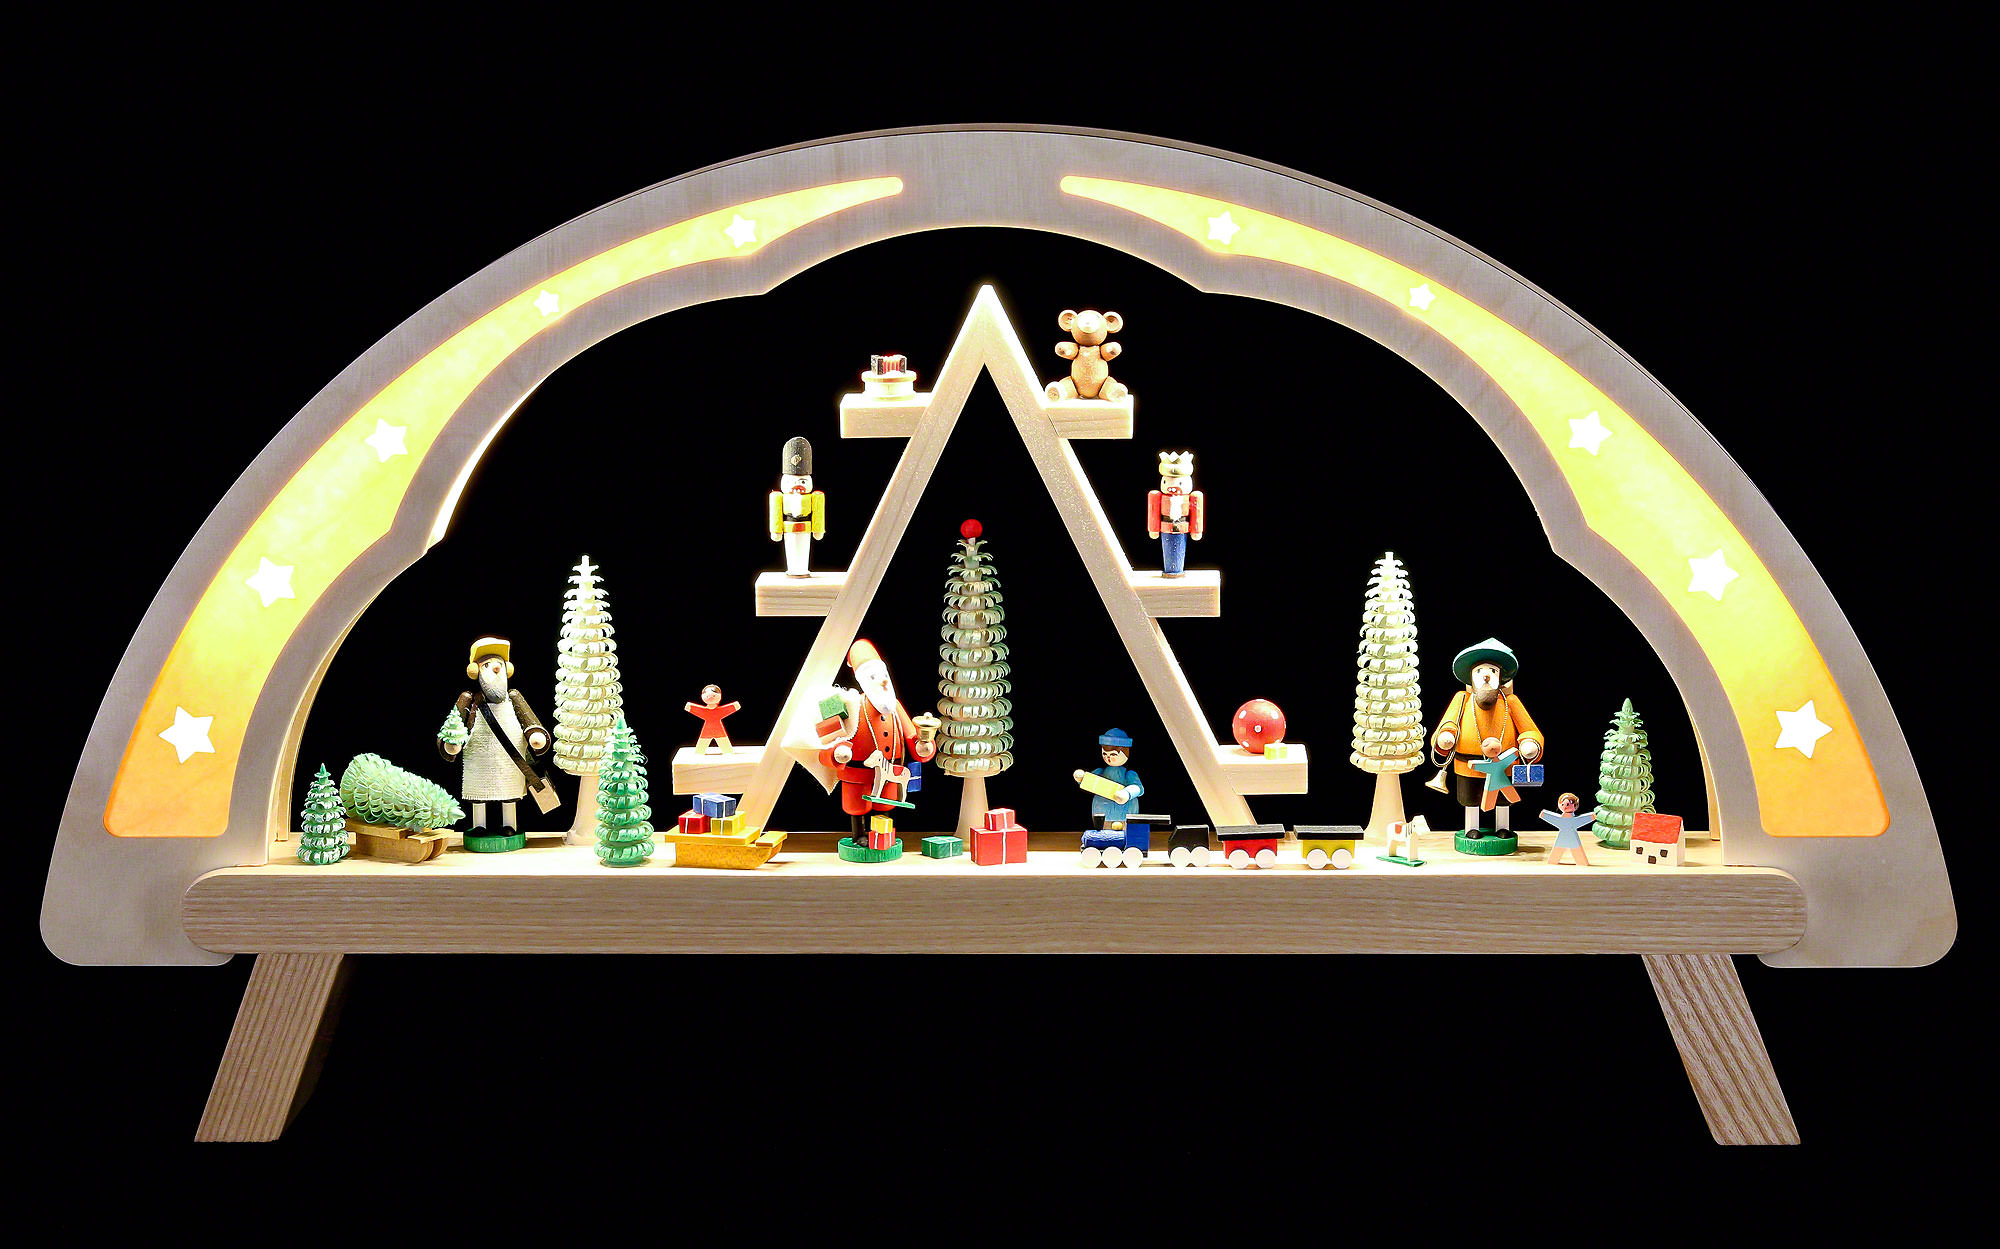 Candle arch christmas market 58x31cm 23x12in ch by for Arch candle christmas decoration